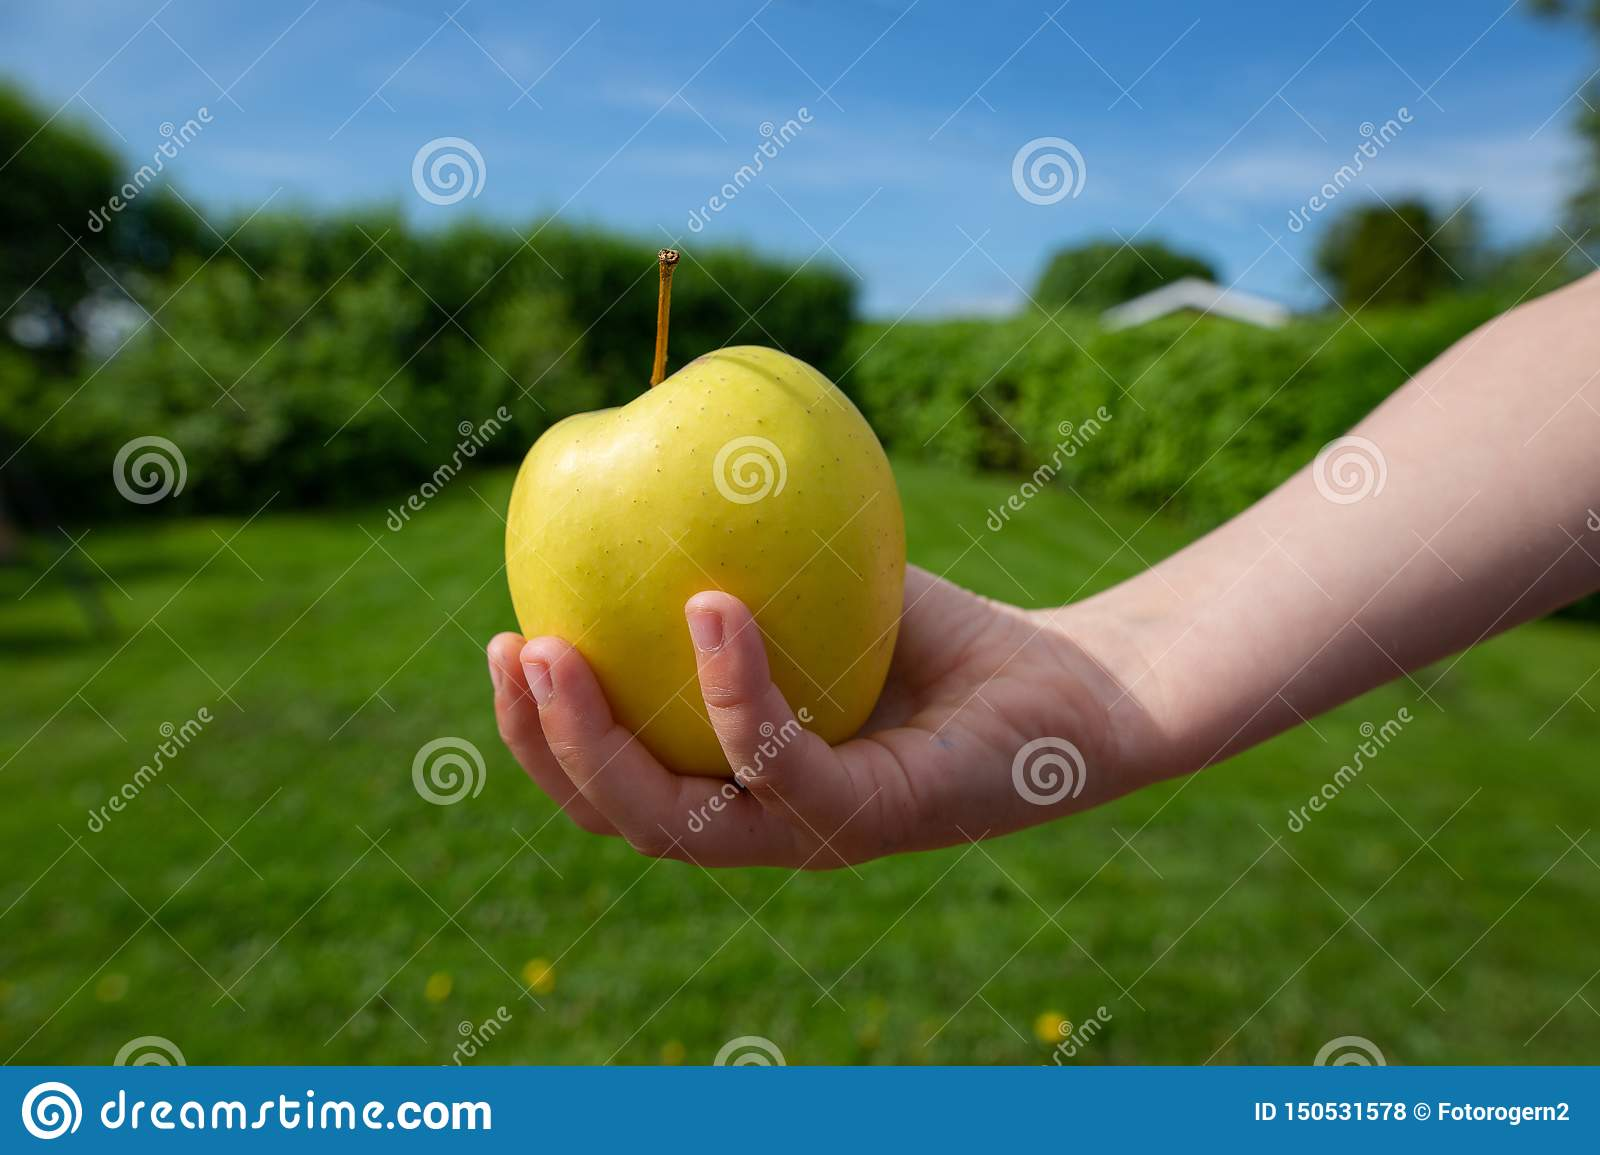 A green apple in a hand reaching out